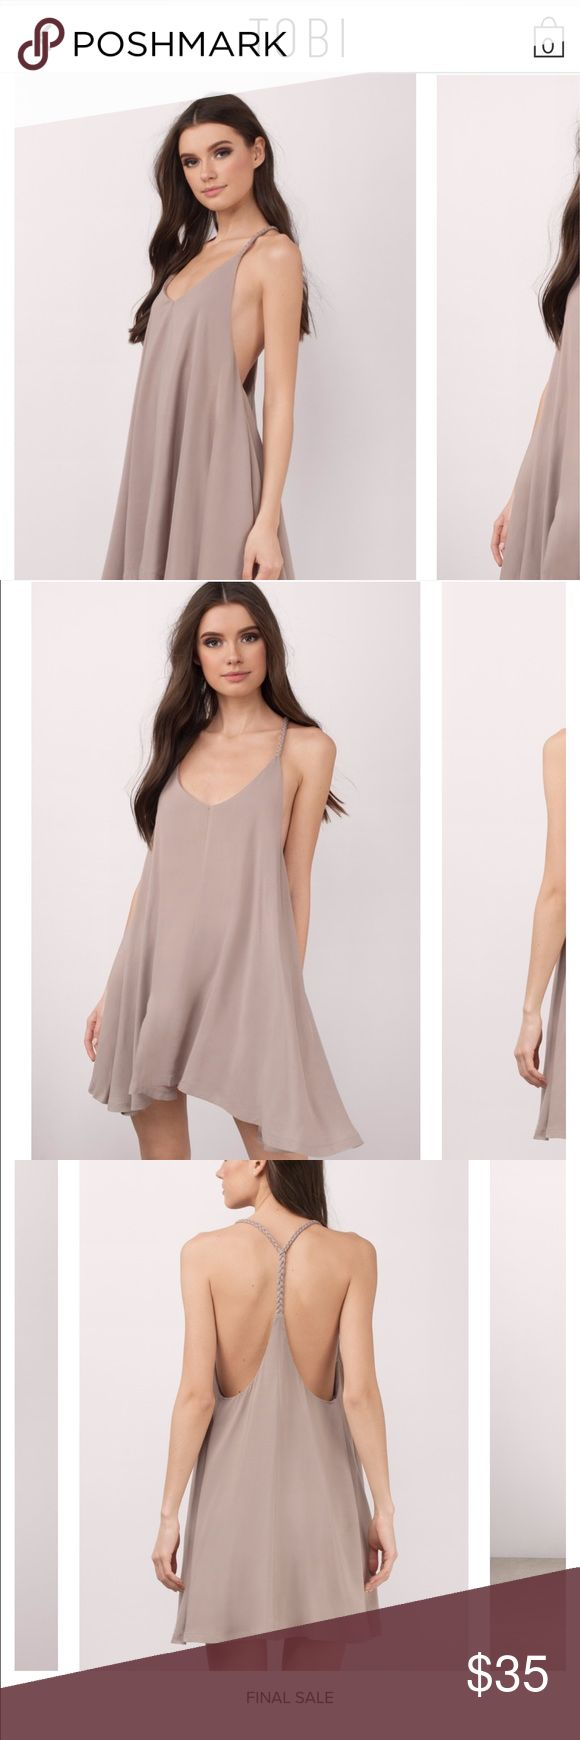 Making that braid taupe braided dress New With Tags! Never been worn beige summer dress Tobi Dresses Midi